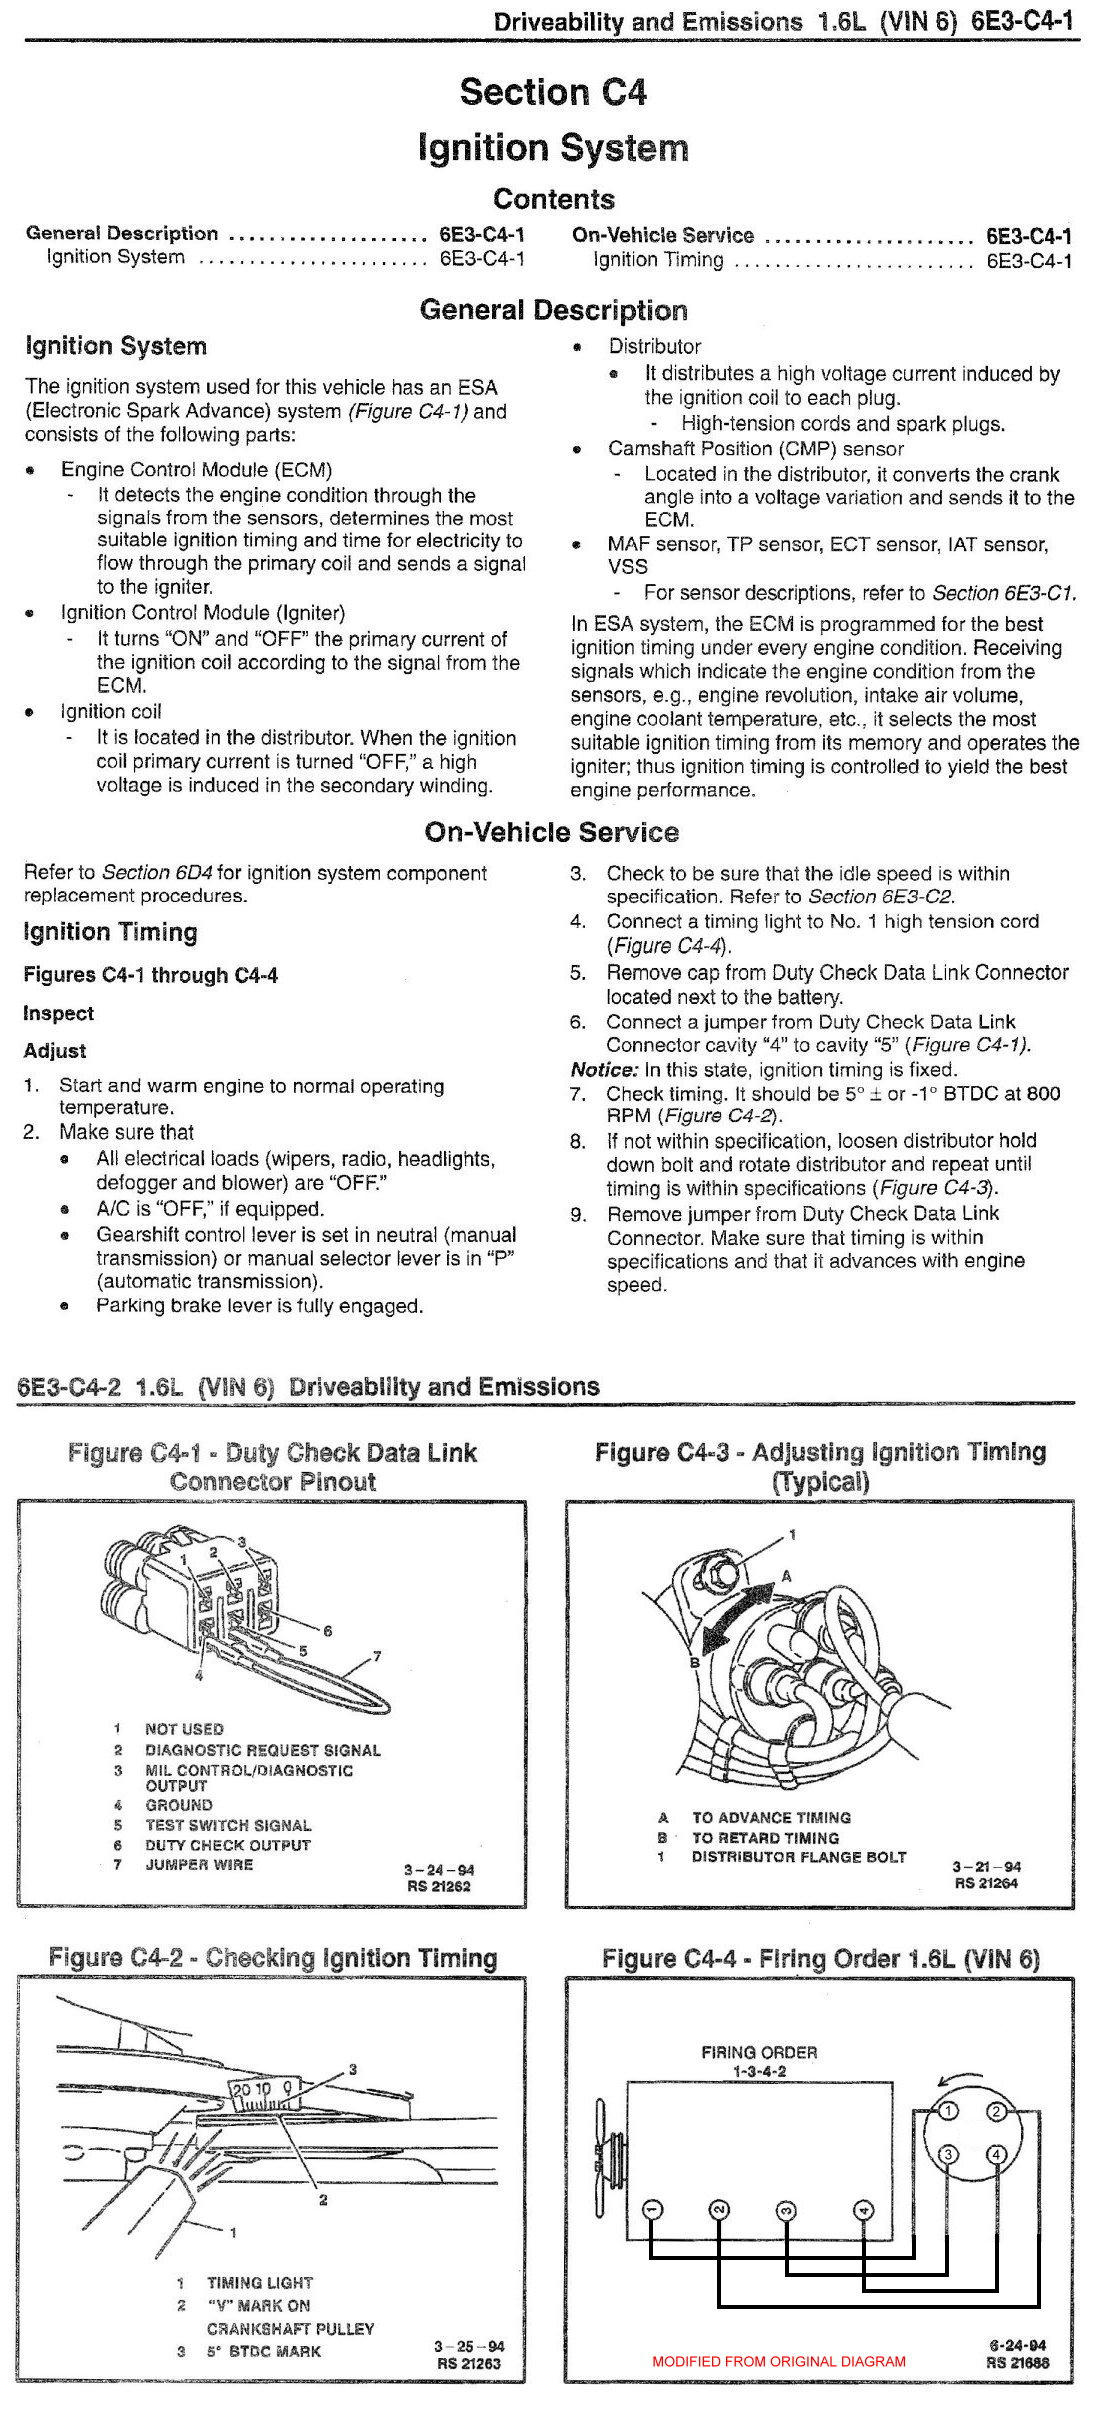 straining at wot under load - page 2